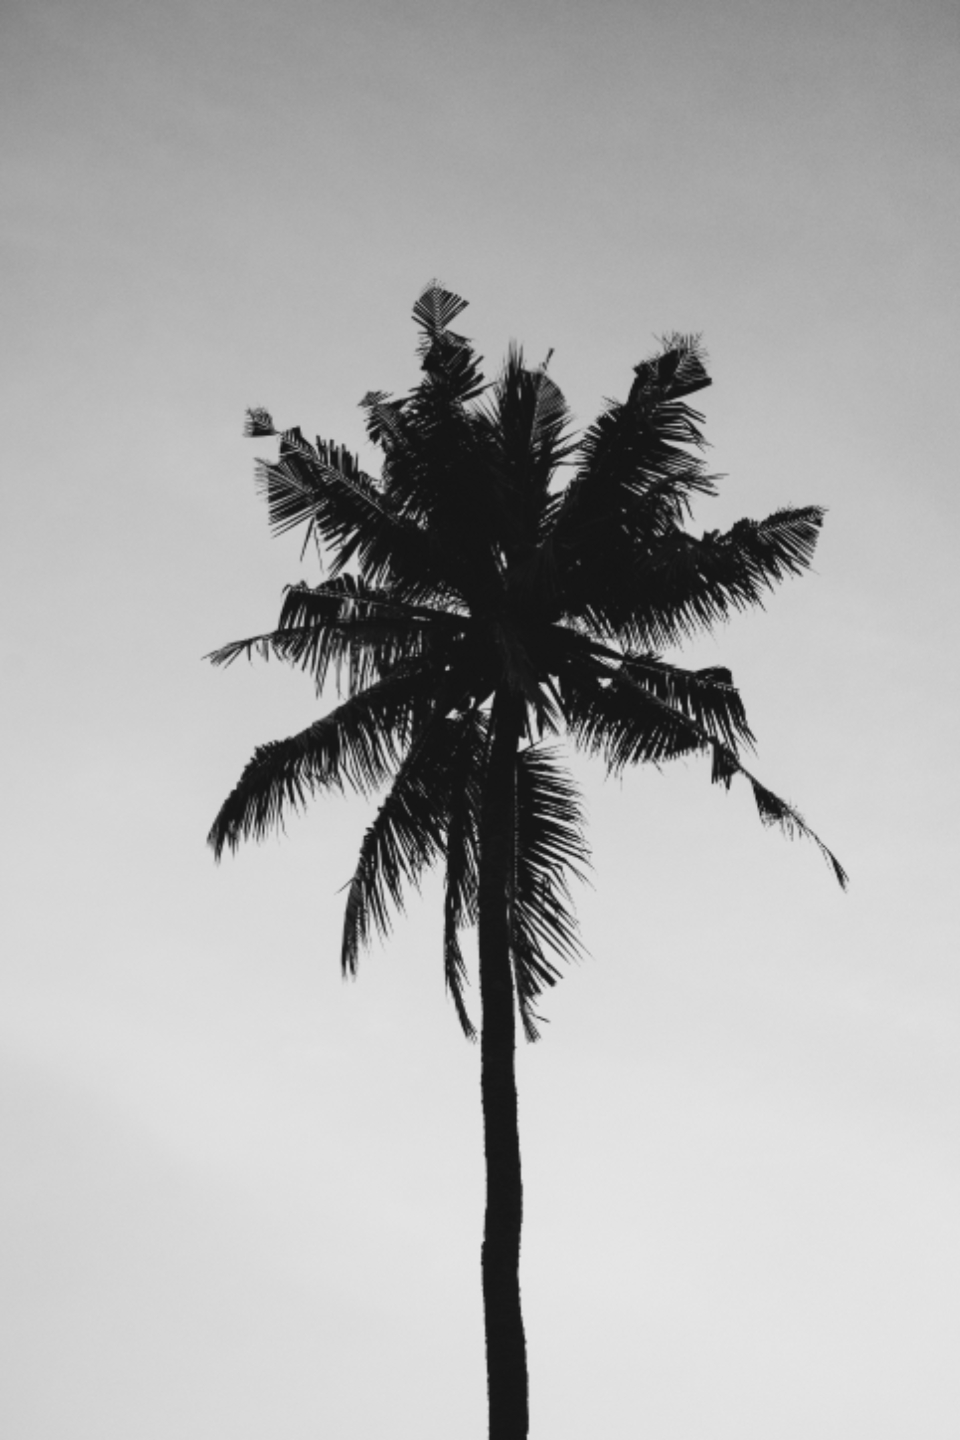 coconut tree cloudy summer nature palm tree gray sky green plant